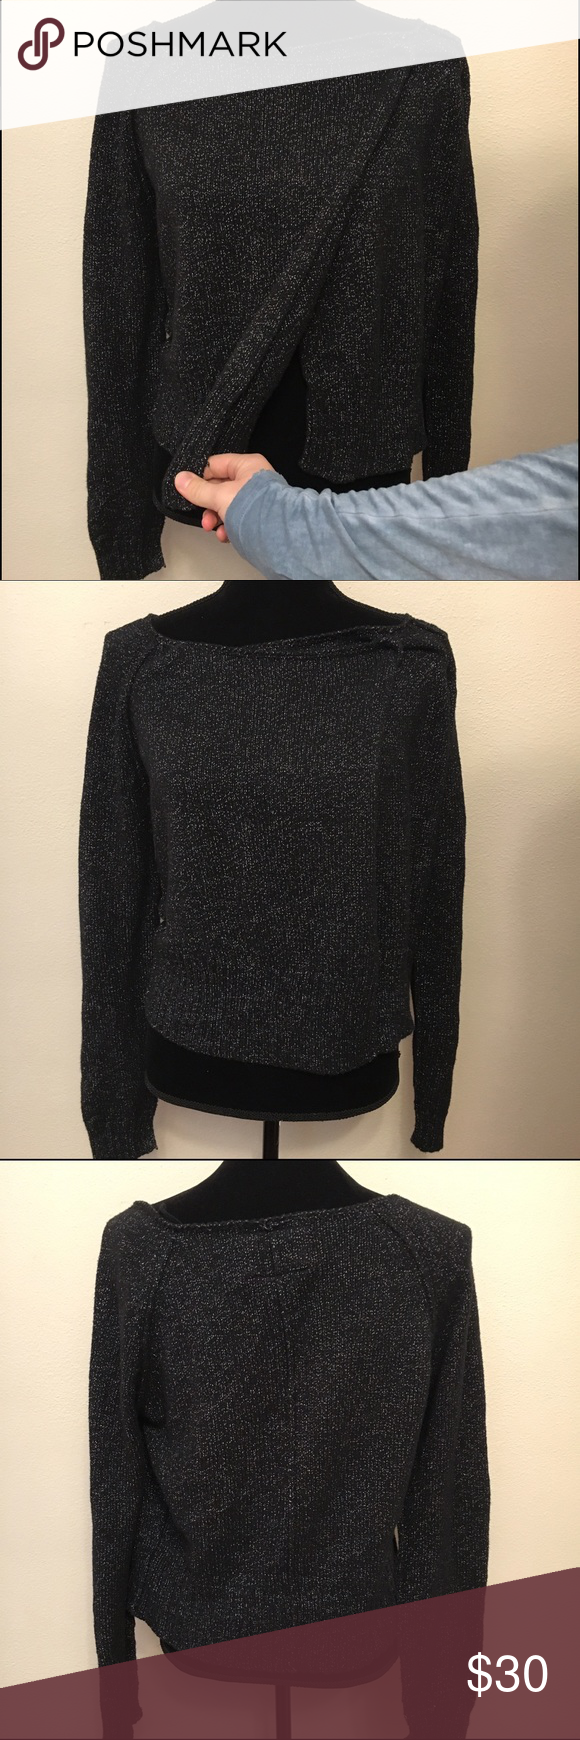 Hurley unique wrap sweater black and silver large | Hurley ...